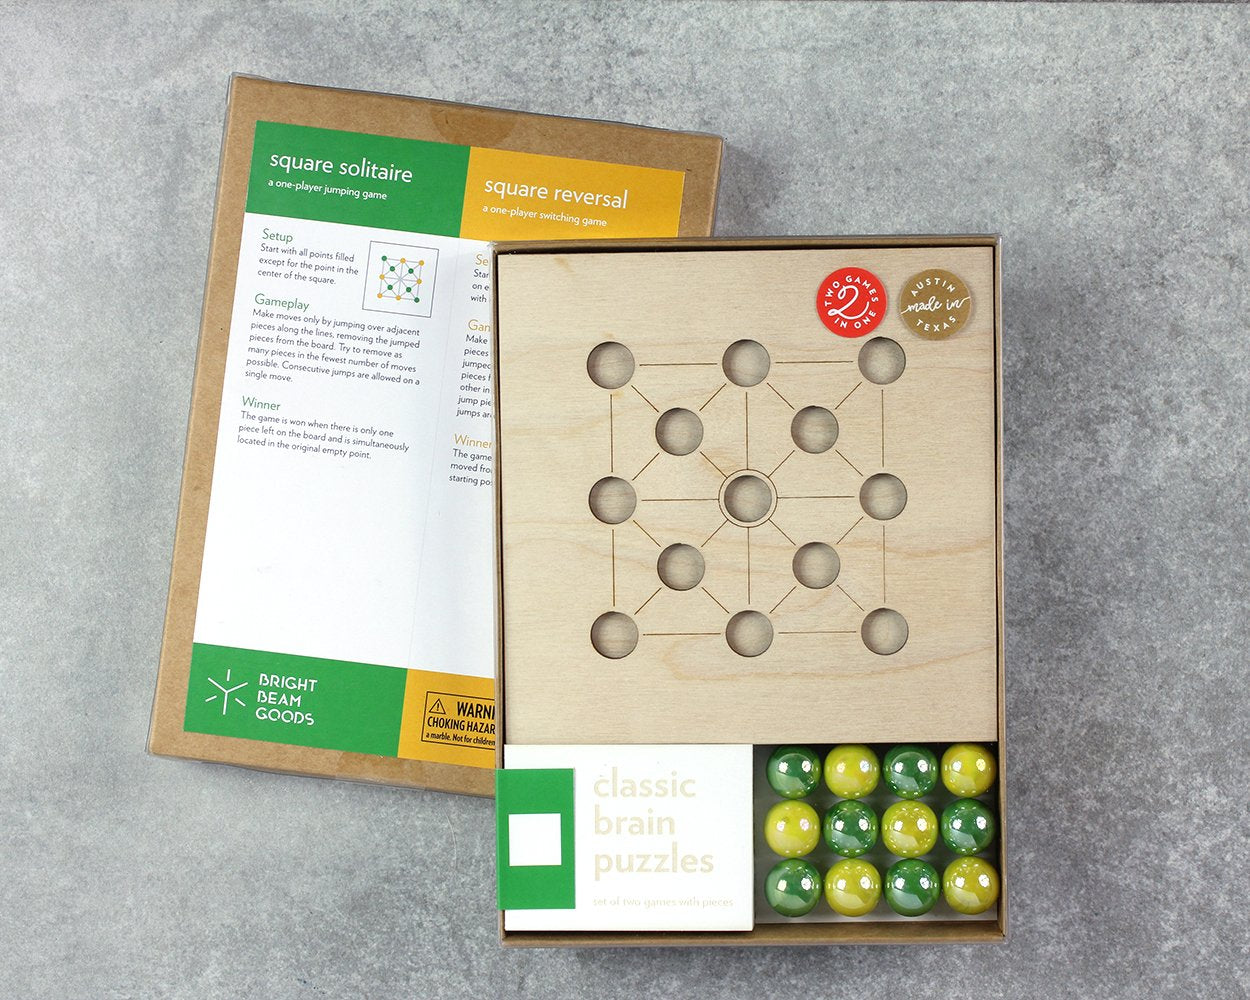 Square marble game in packaging